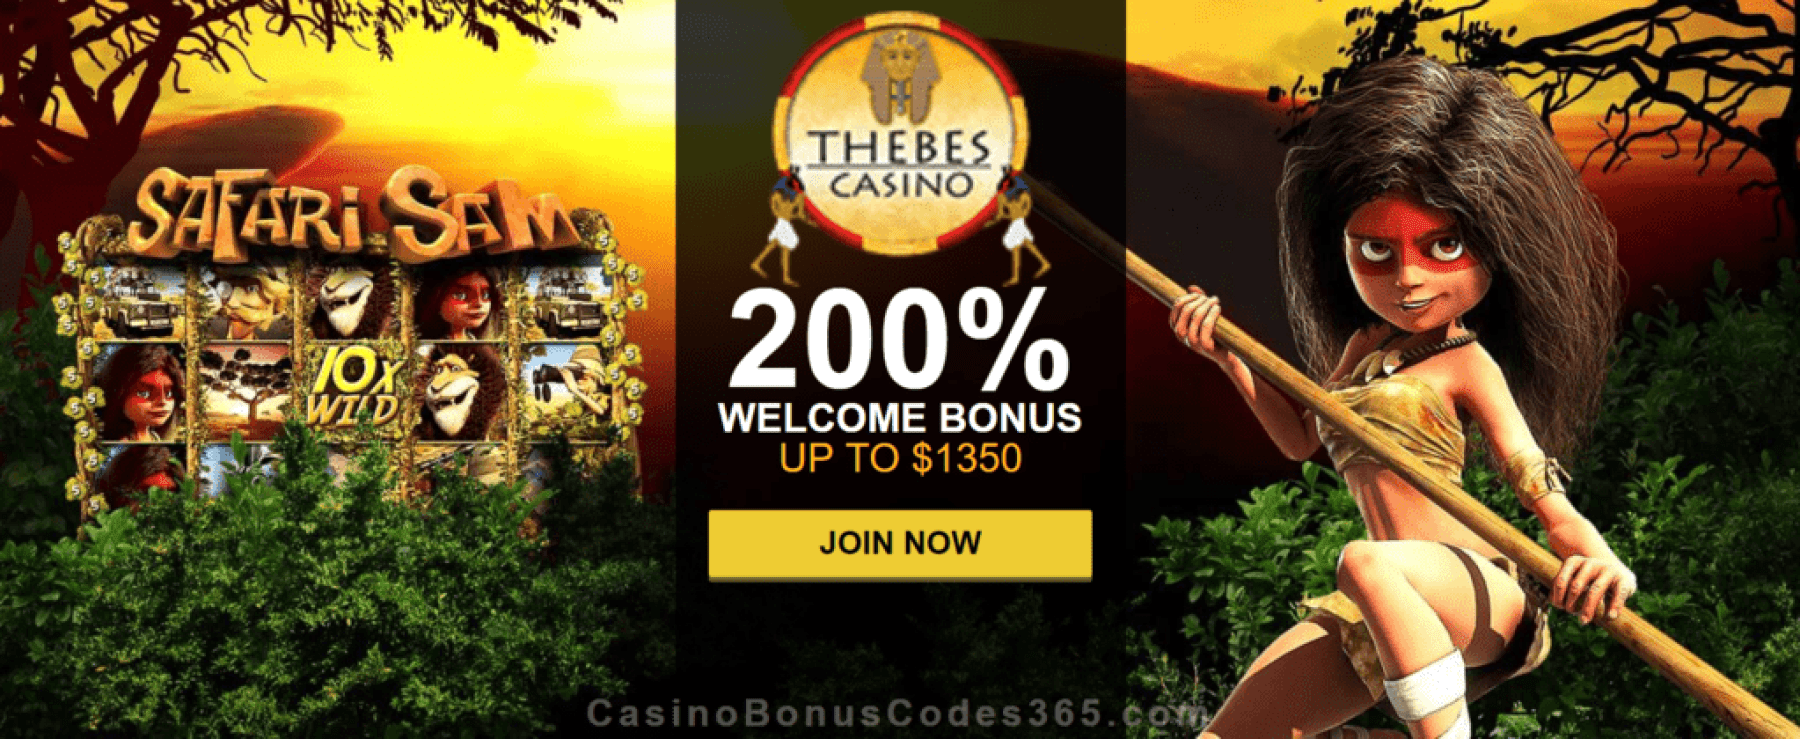 Thebes Casino 200% Match Welcome Bonus